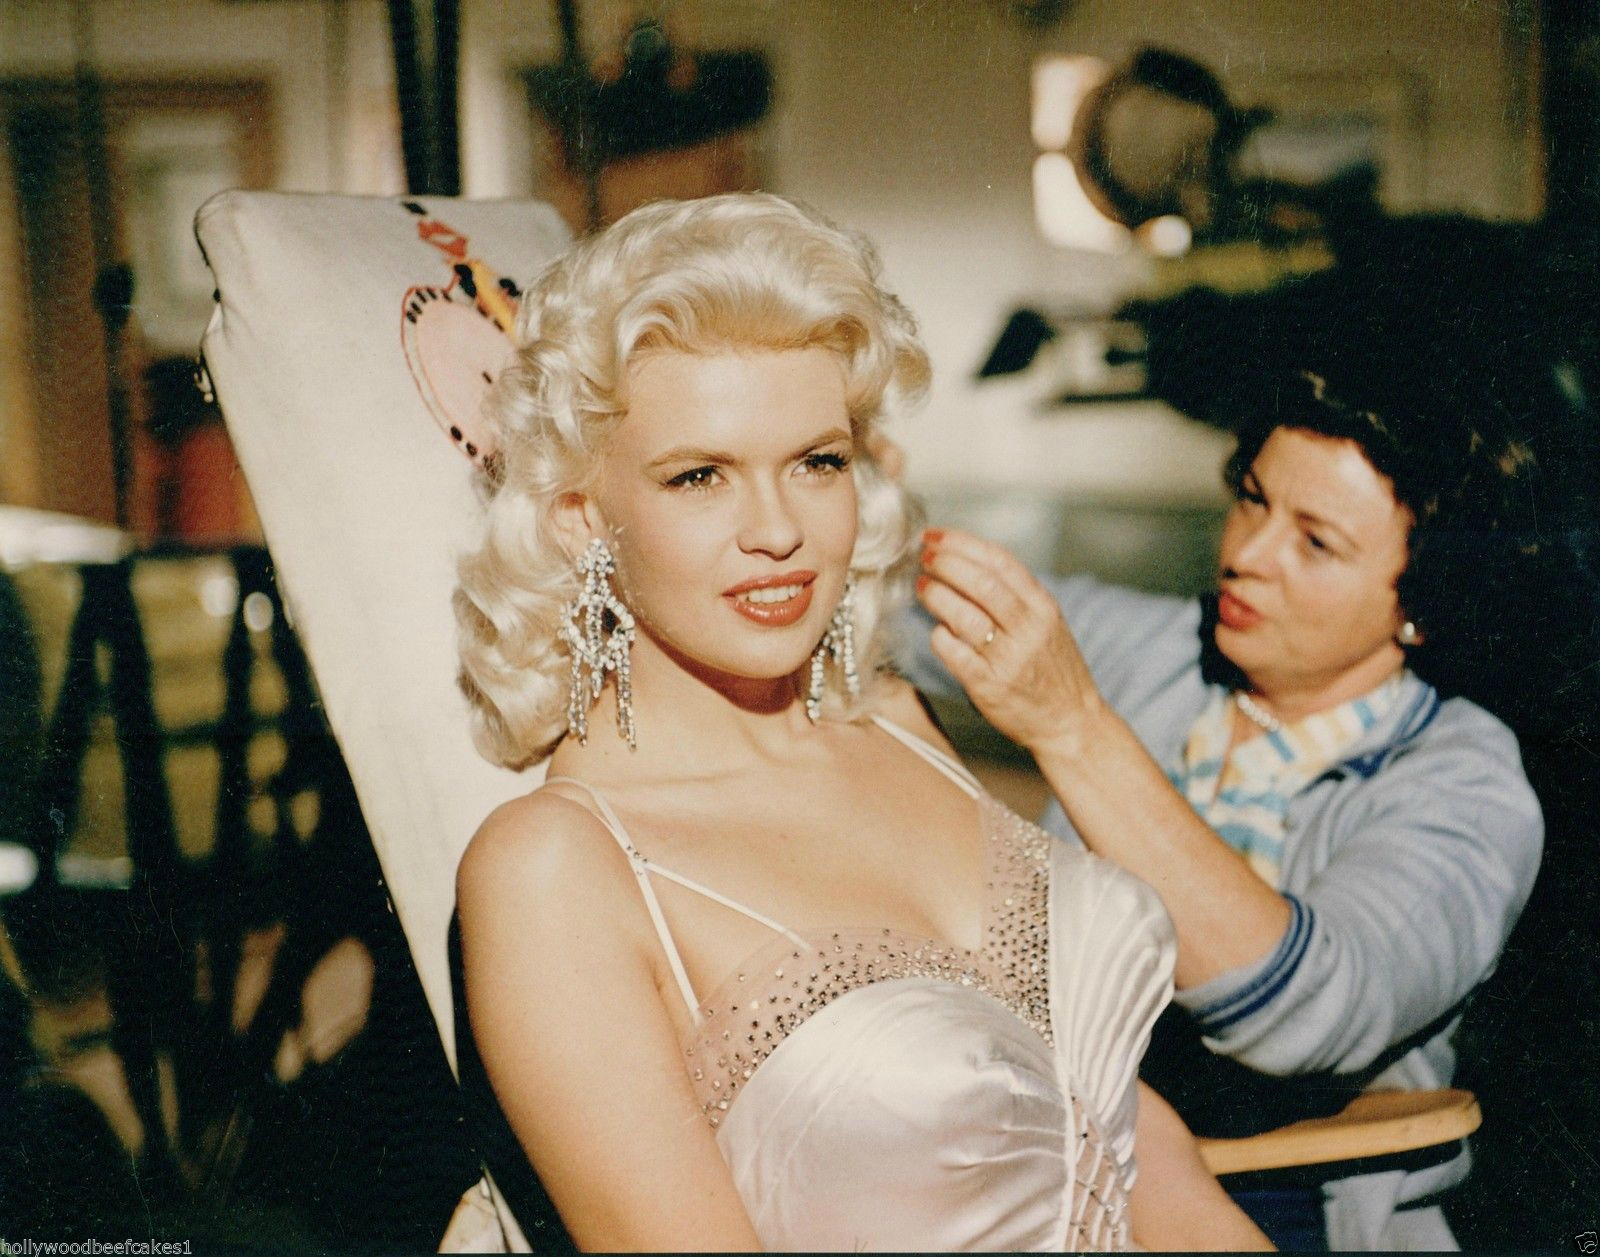 jayne-1956-film-the_girl_cant_help_it-on_set-1-2